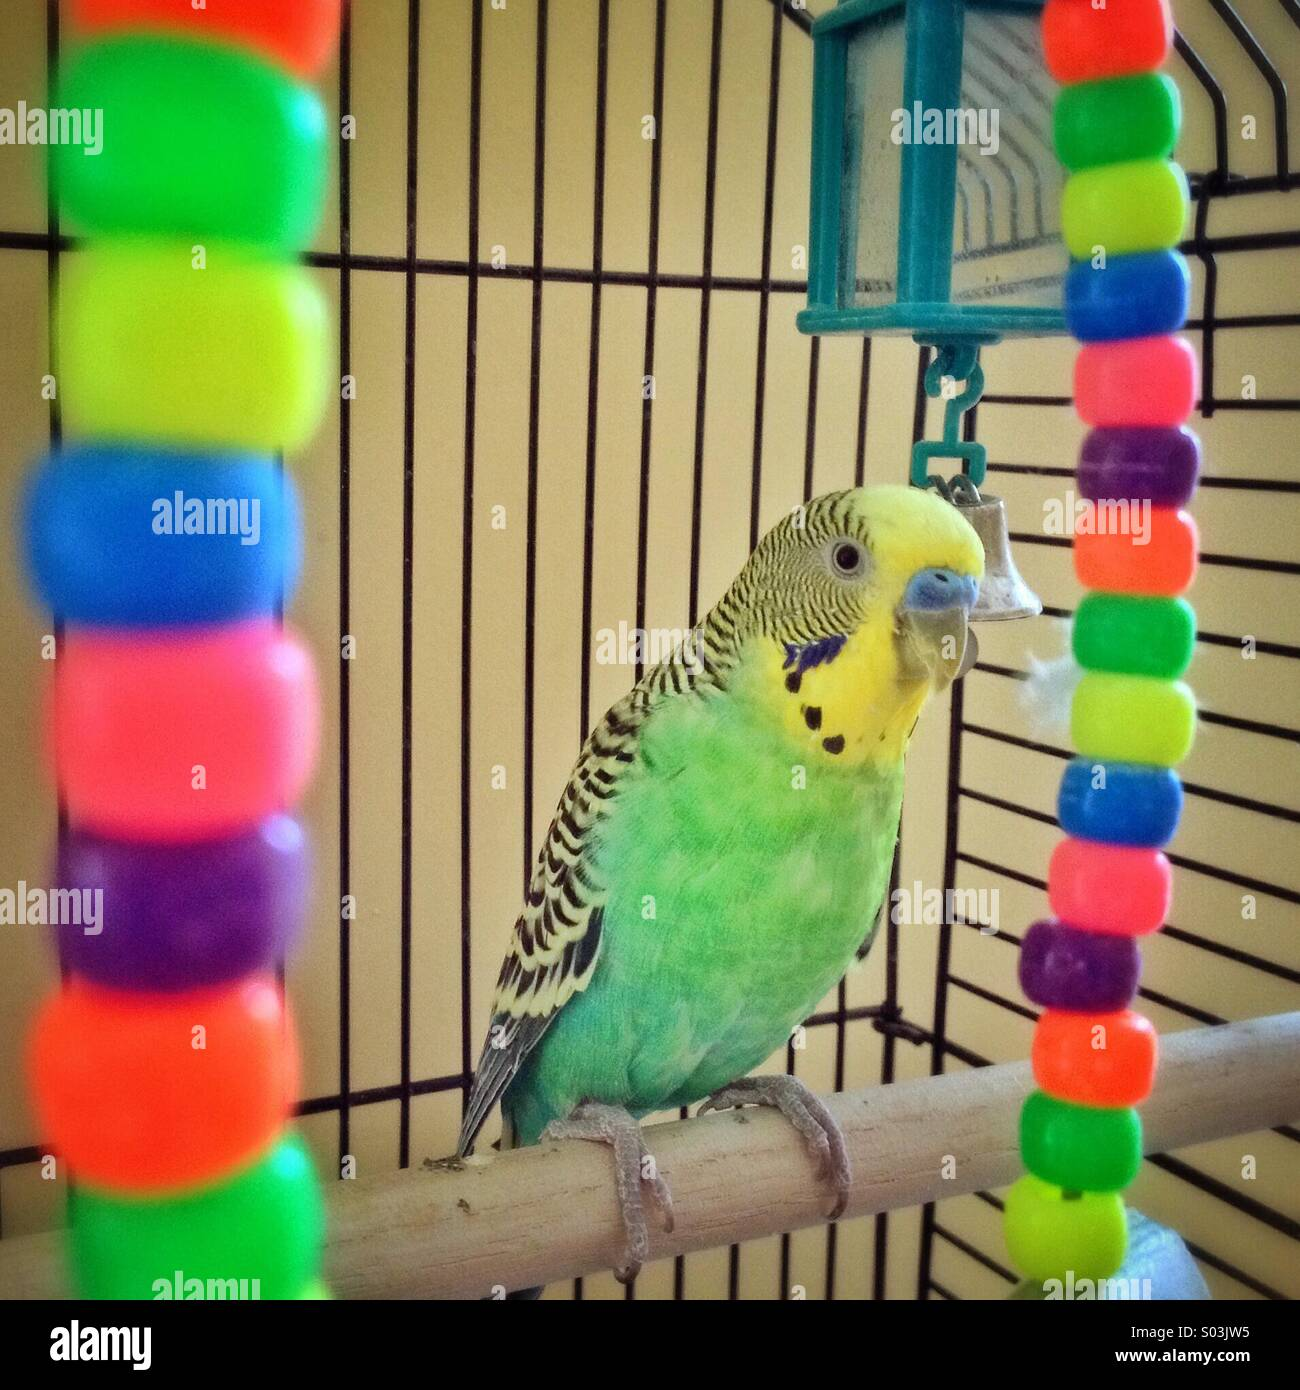 Green and yellow Budgie bird inside colourful cage. - Stock Image